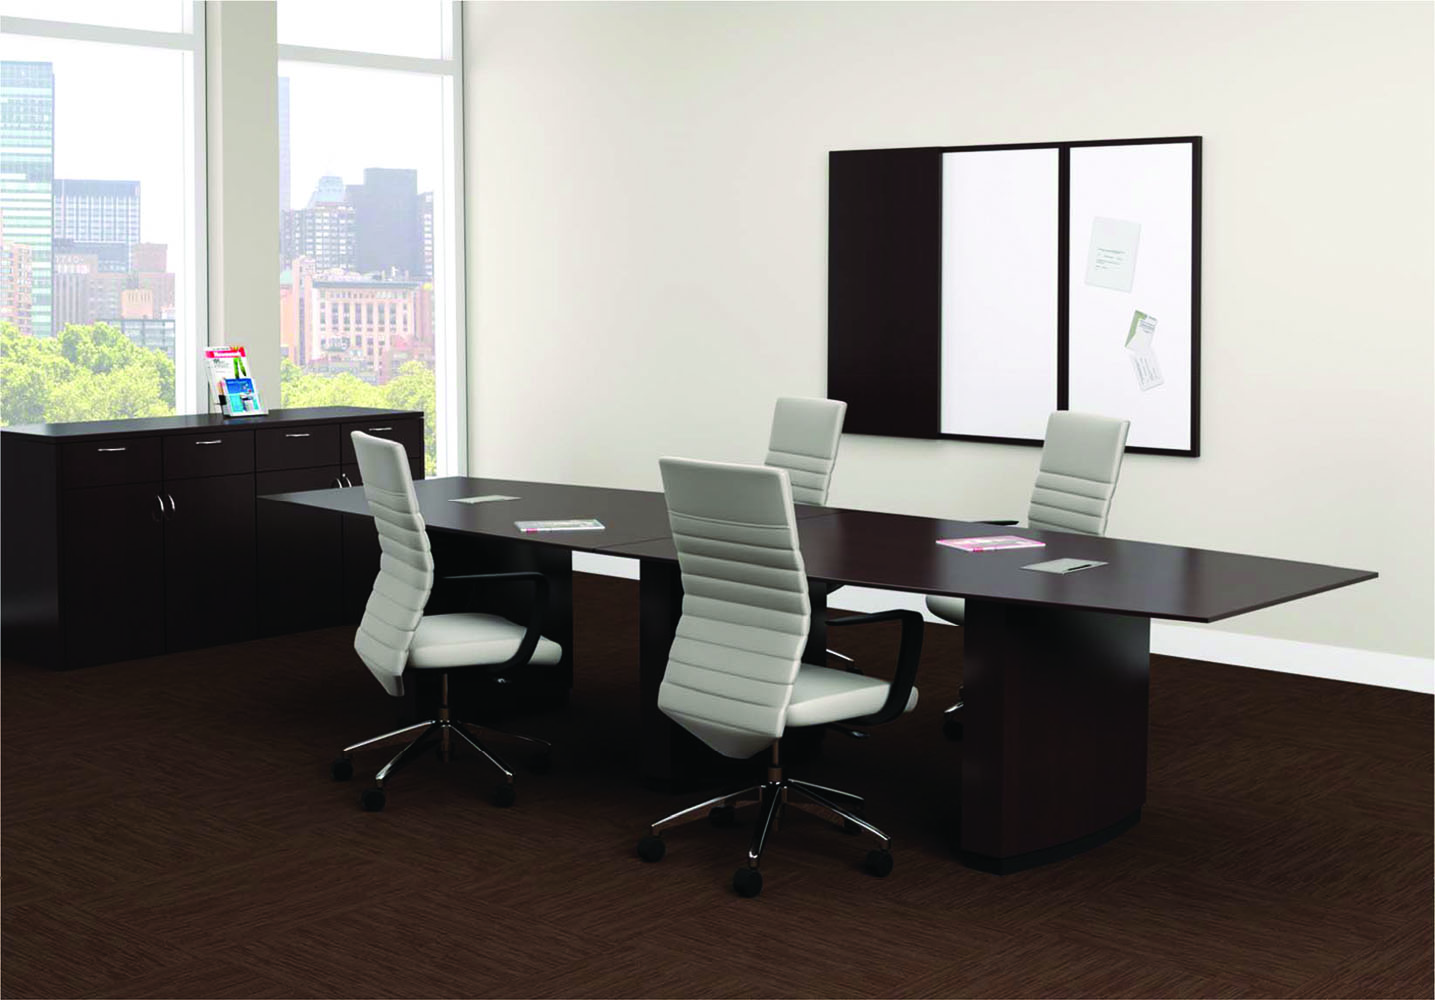 Boardroom Setup - Collaboration Spaces Office Furniture Sets